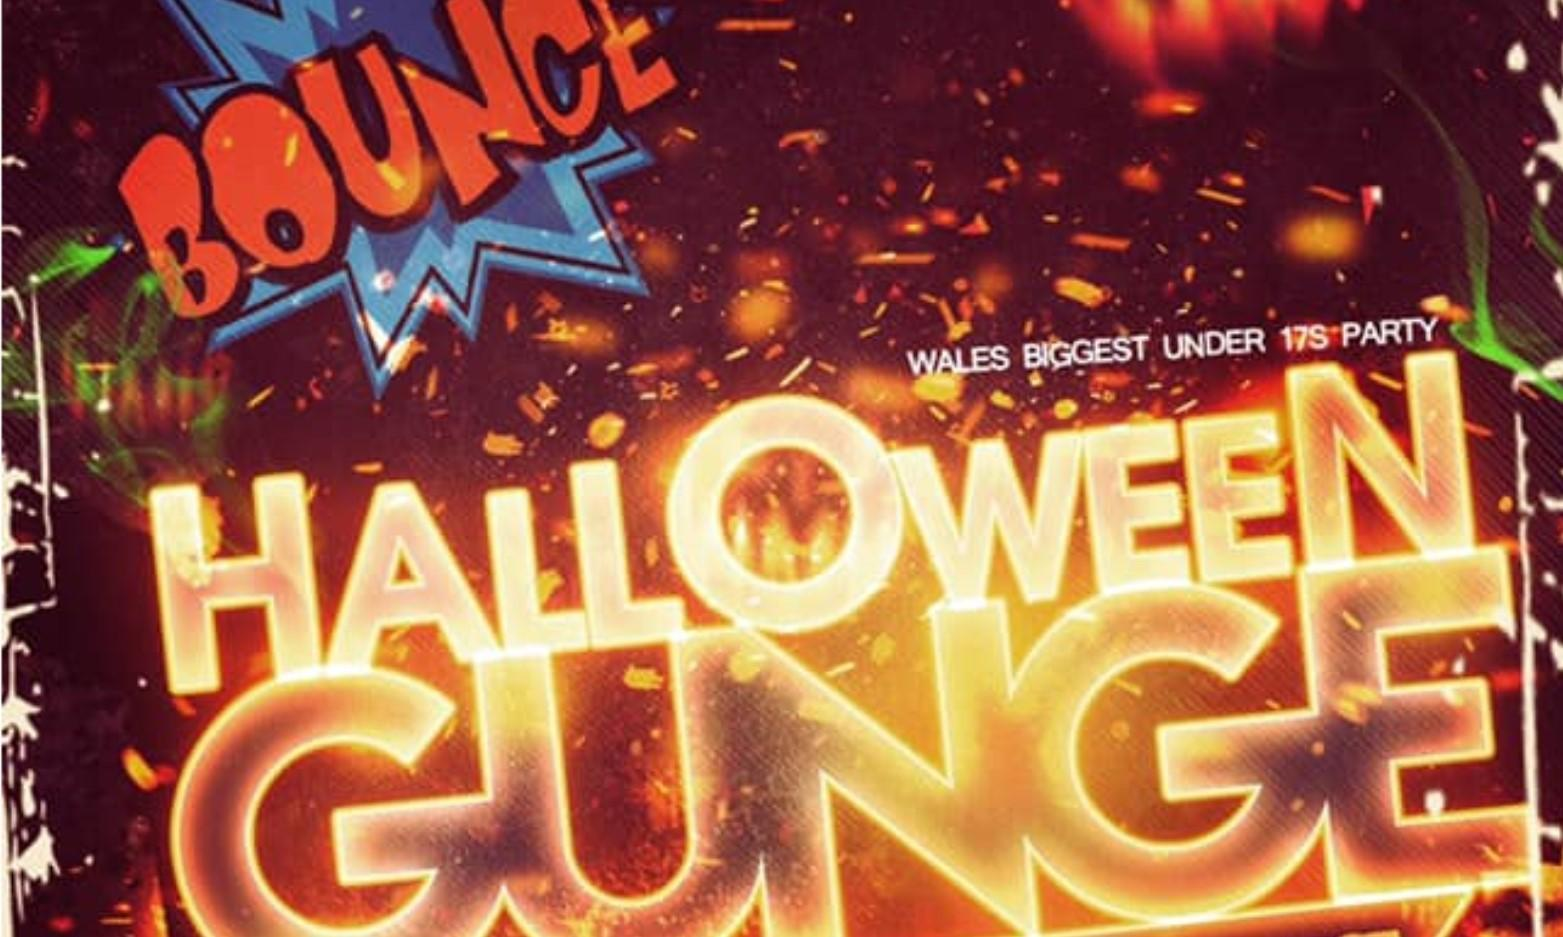 Bounce Under 17's Halloween with Gunge Tank Party